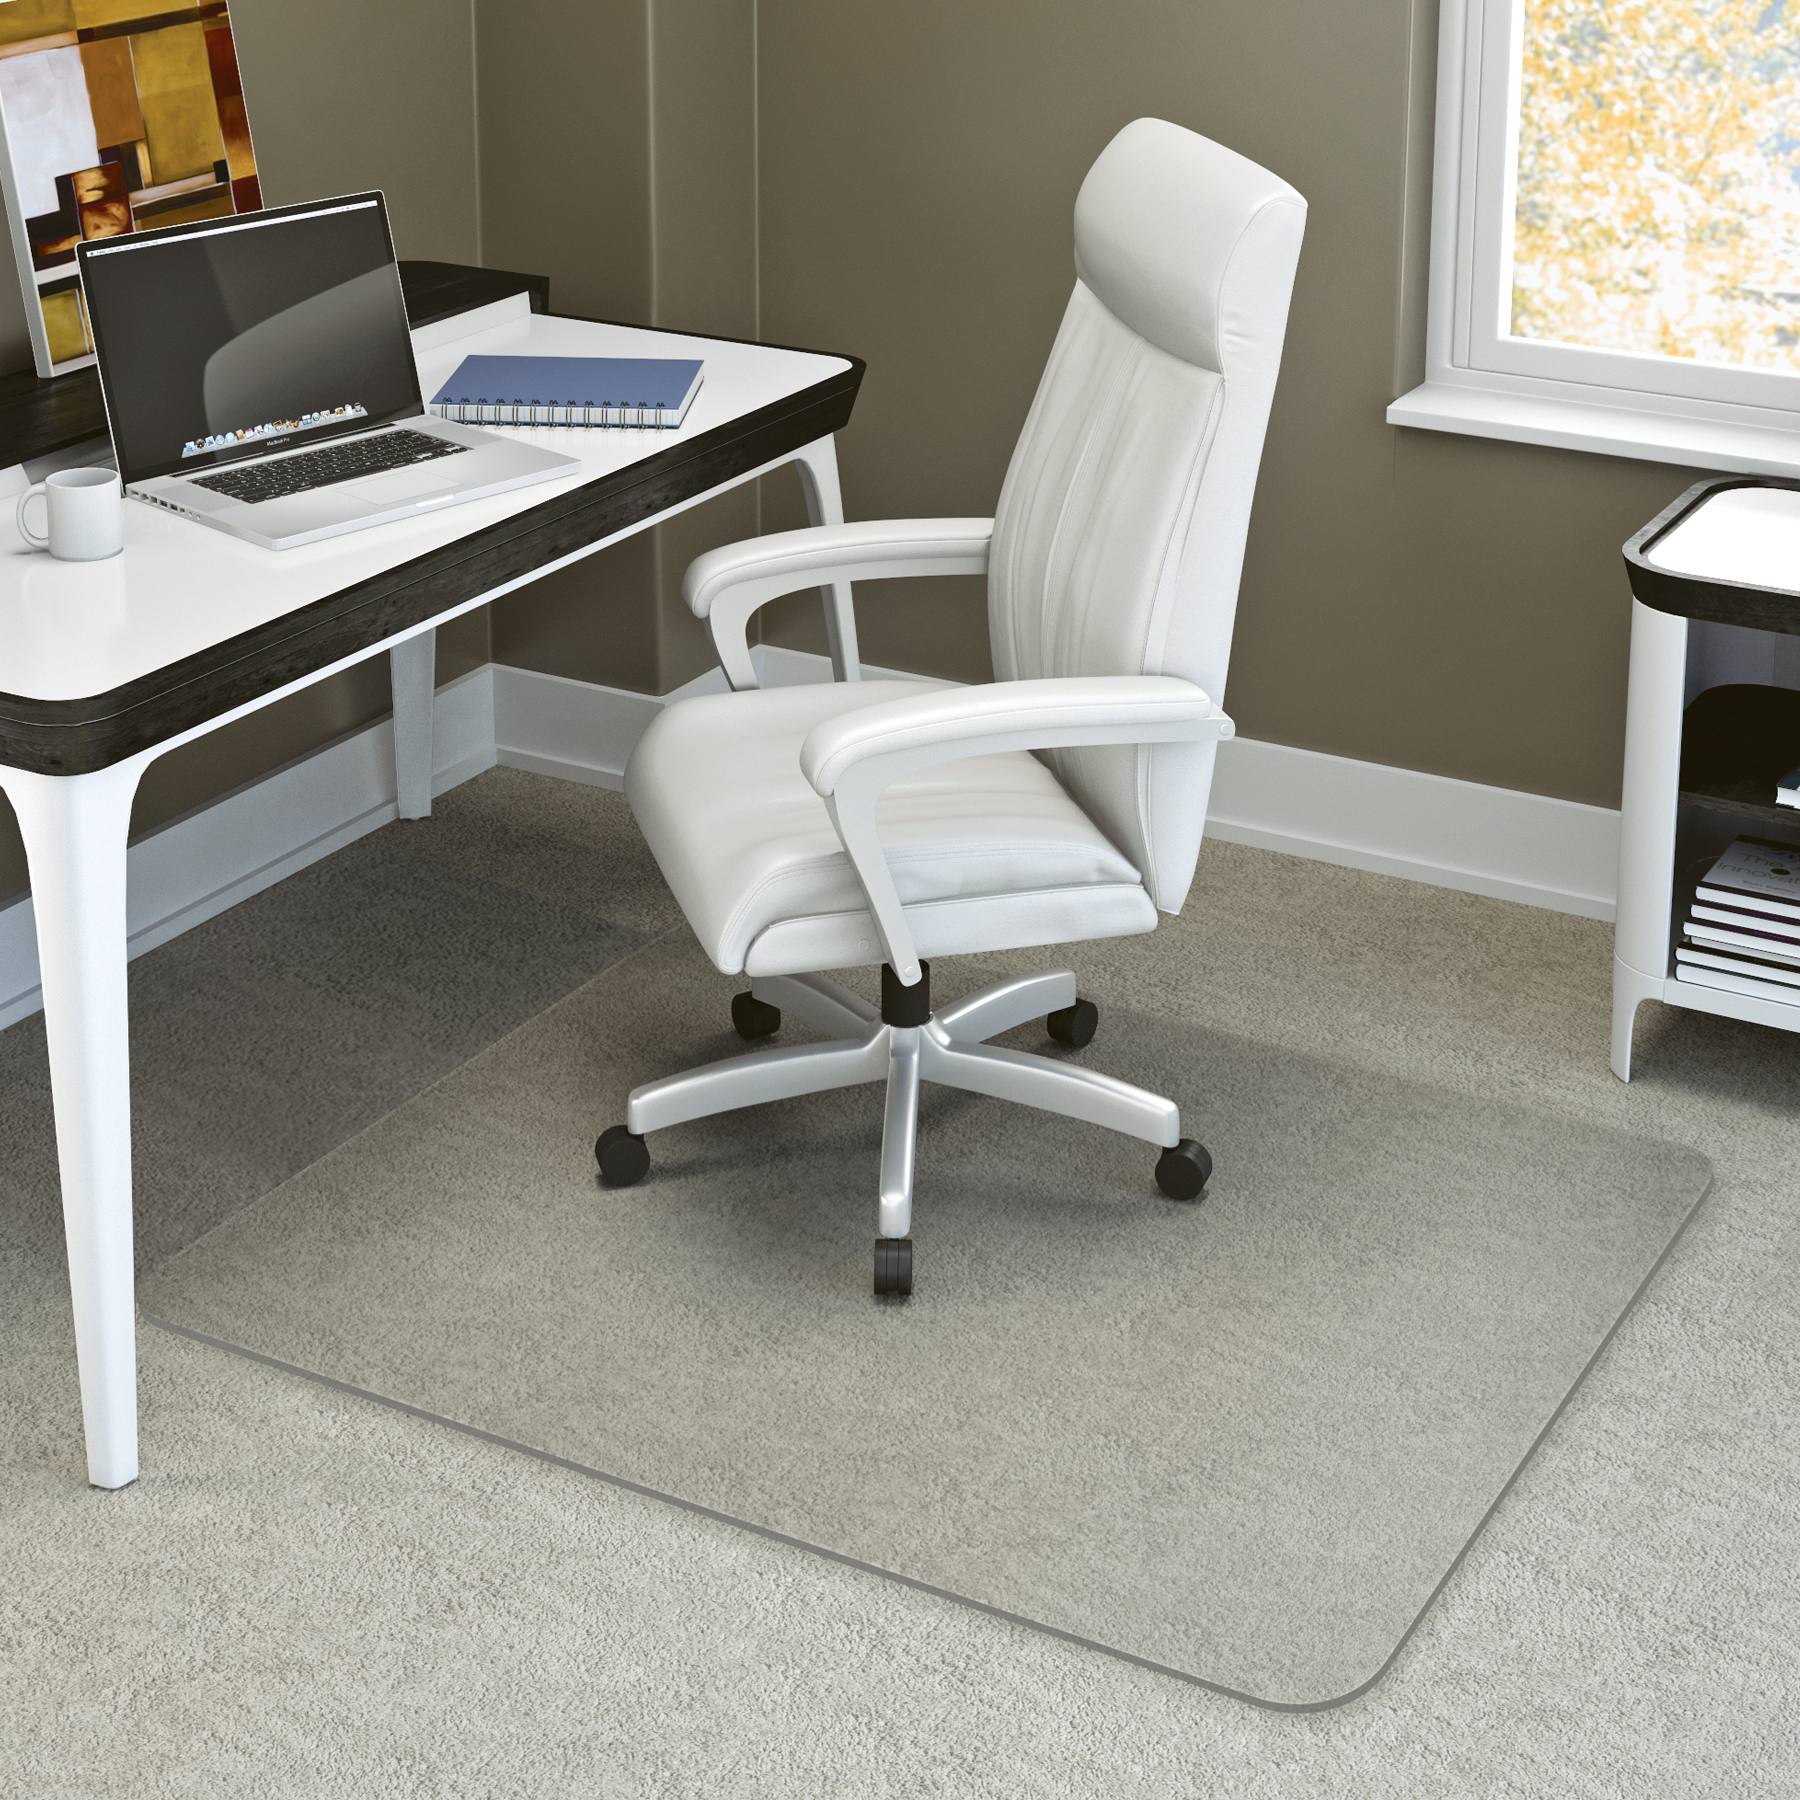 chair multiple options design mats office size bologne pvc mat